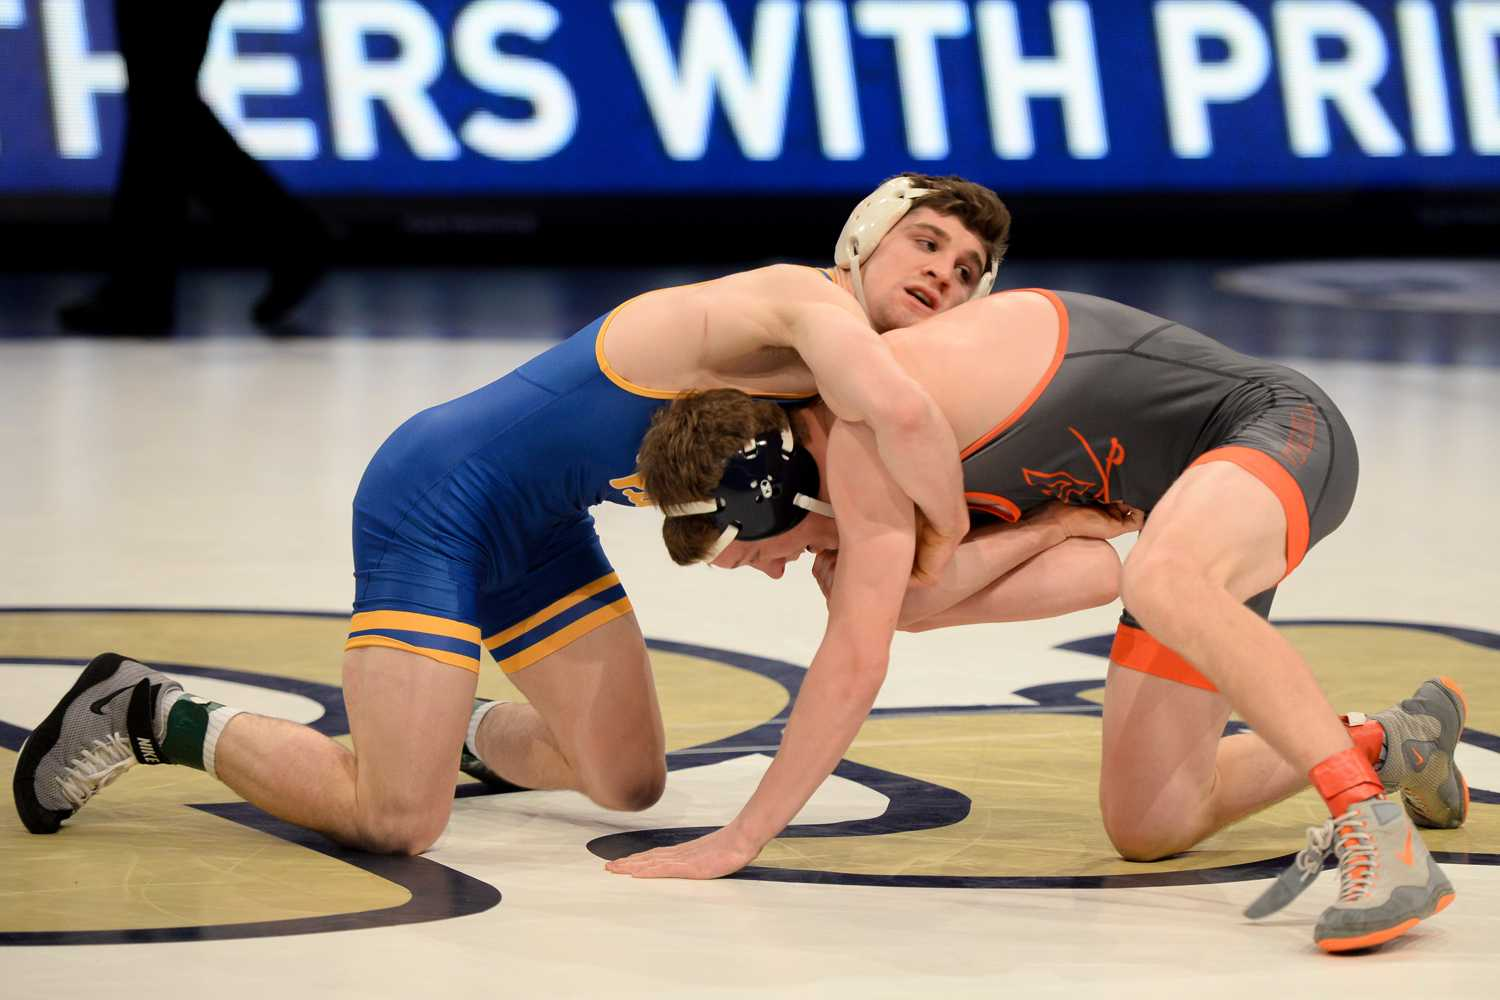 Senior Dom Forys grapples with his opponent during Pitt's 28-9 victory over Virginia Friday night. (Photo by Chiara Rigaud | Staff Photographer)